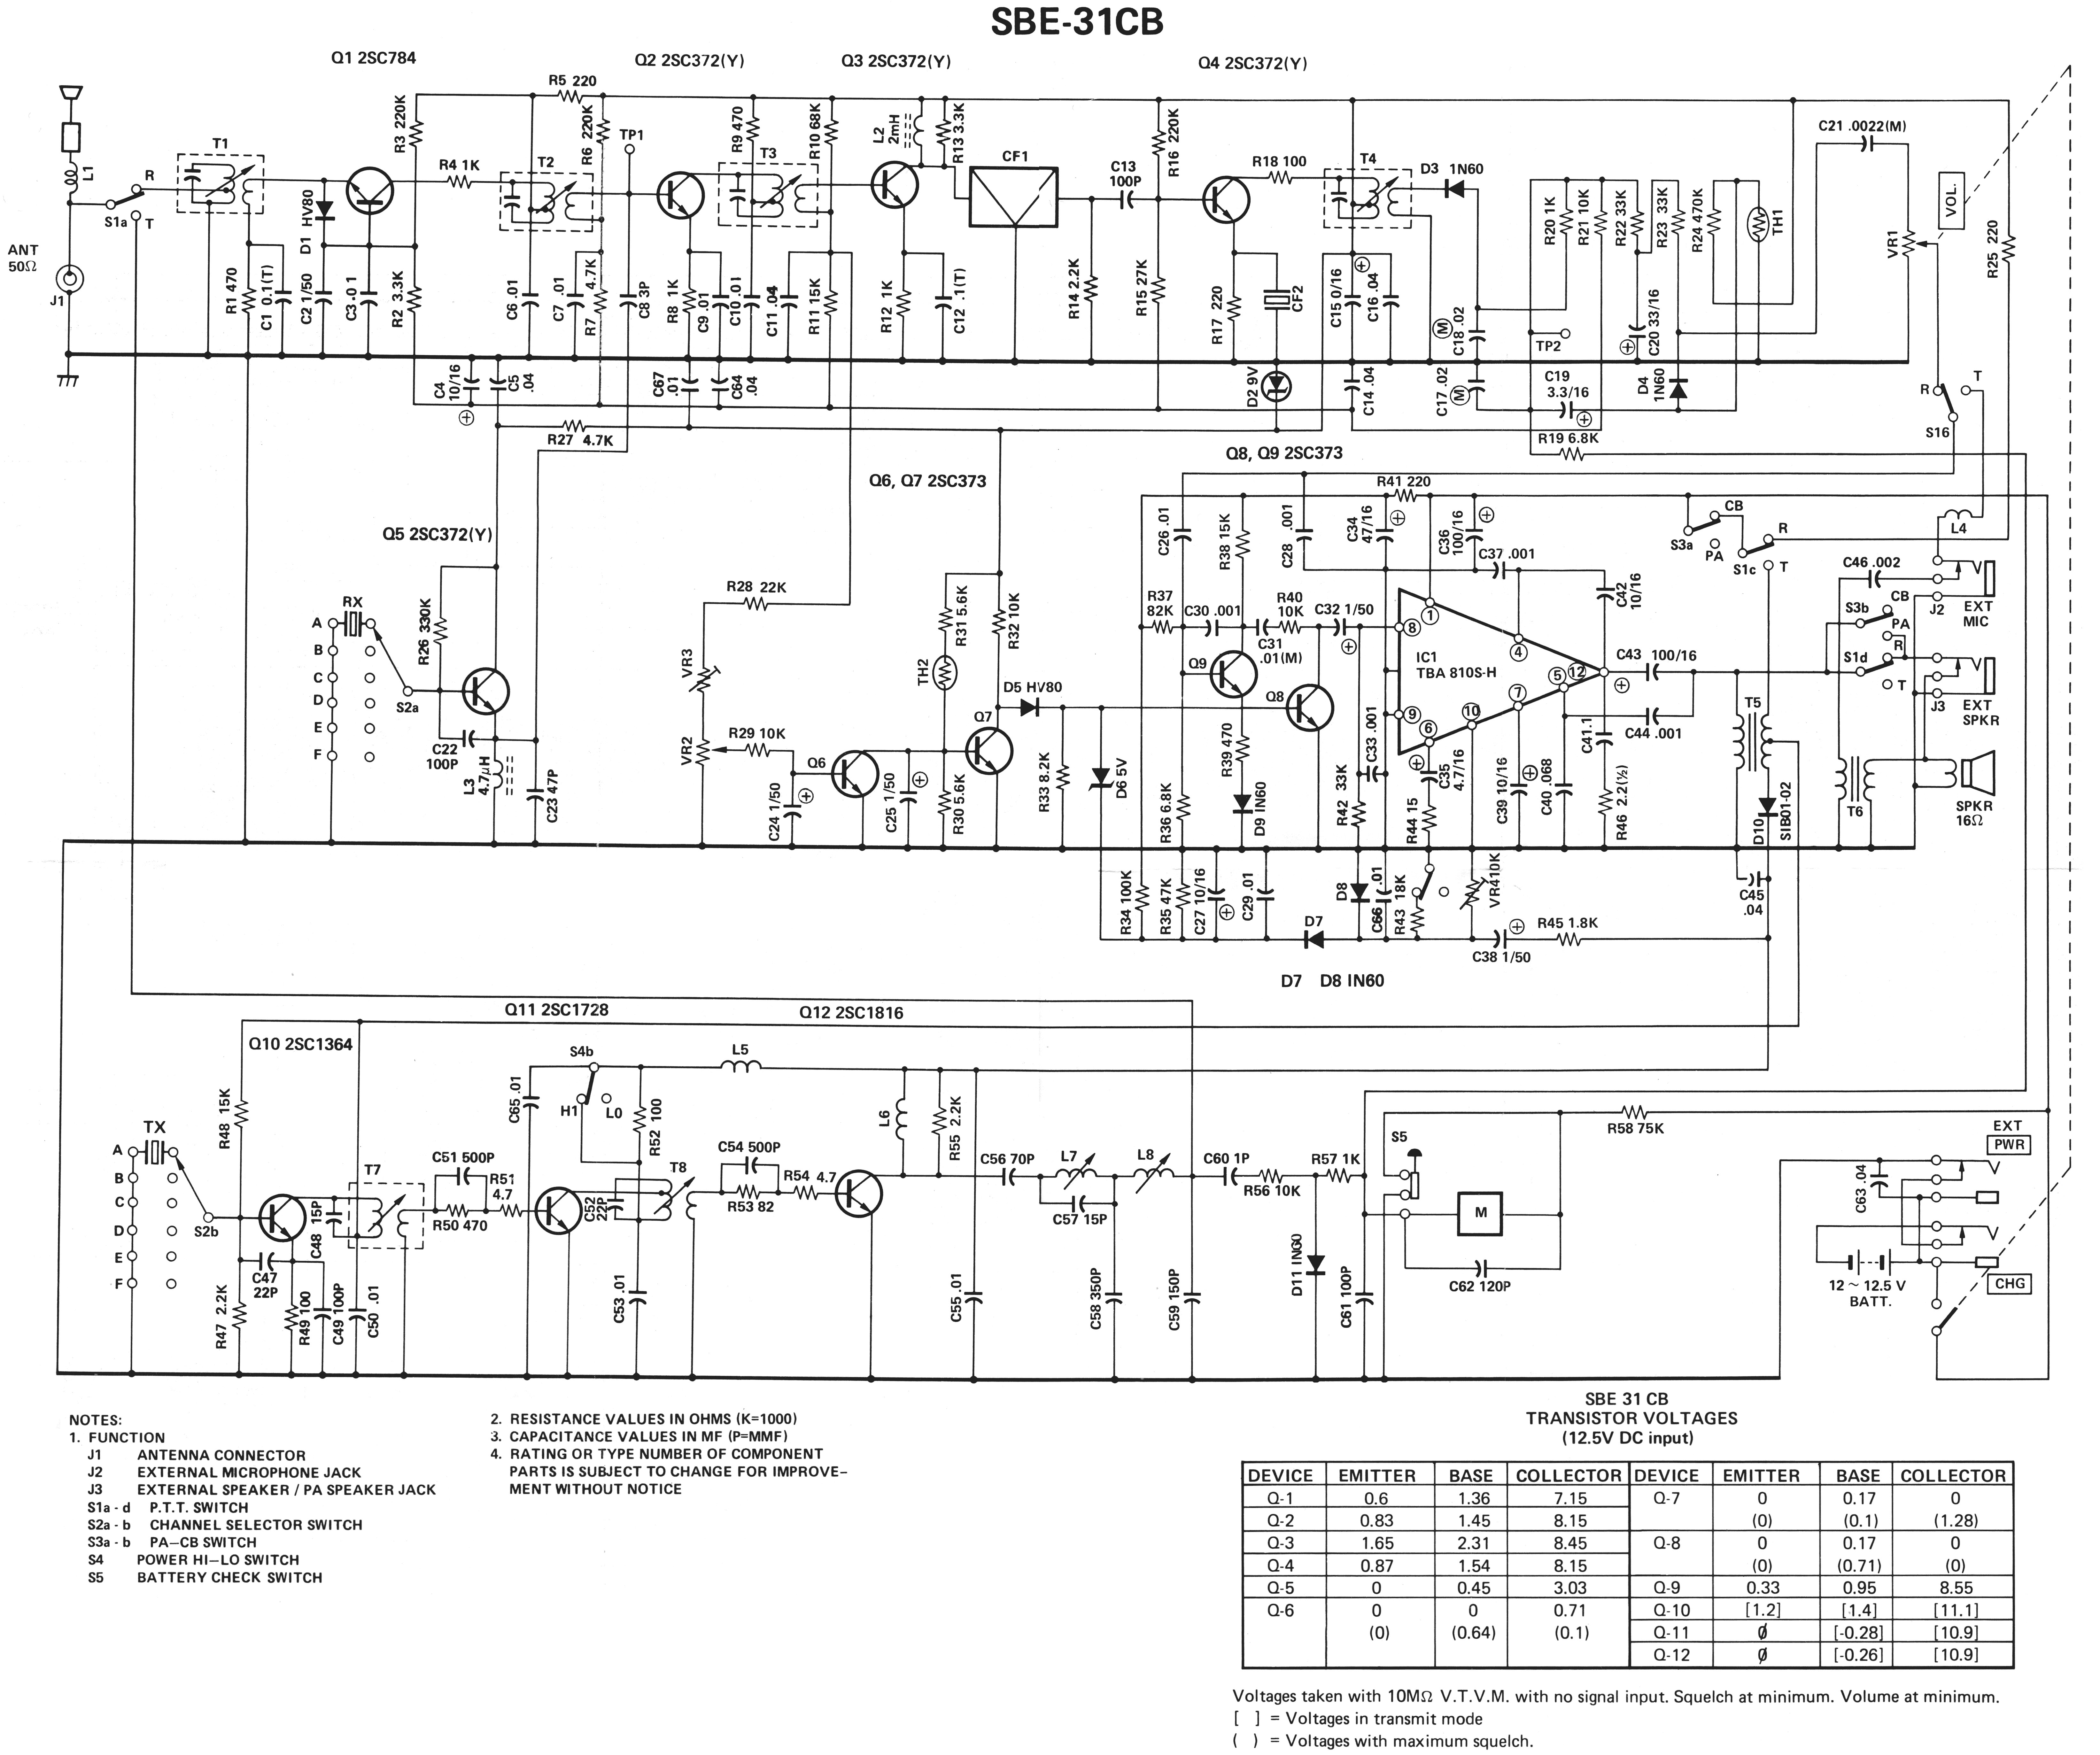 Dometic Rm2611 Refrigerator Wiring Diagram. Dometic. Free